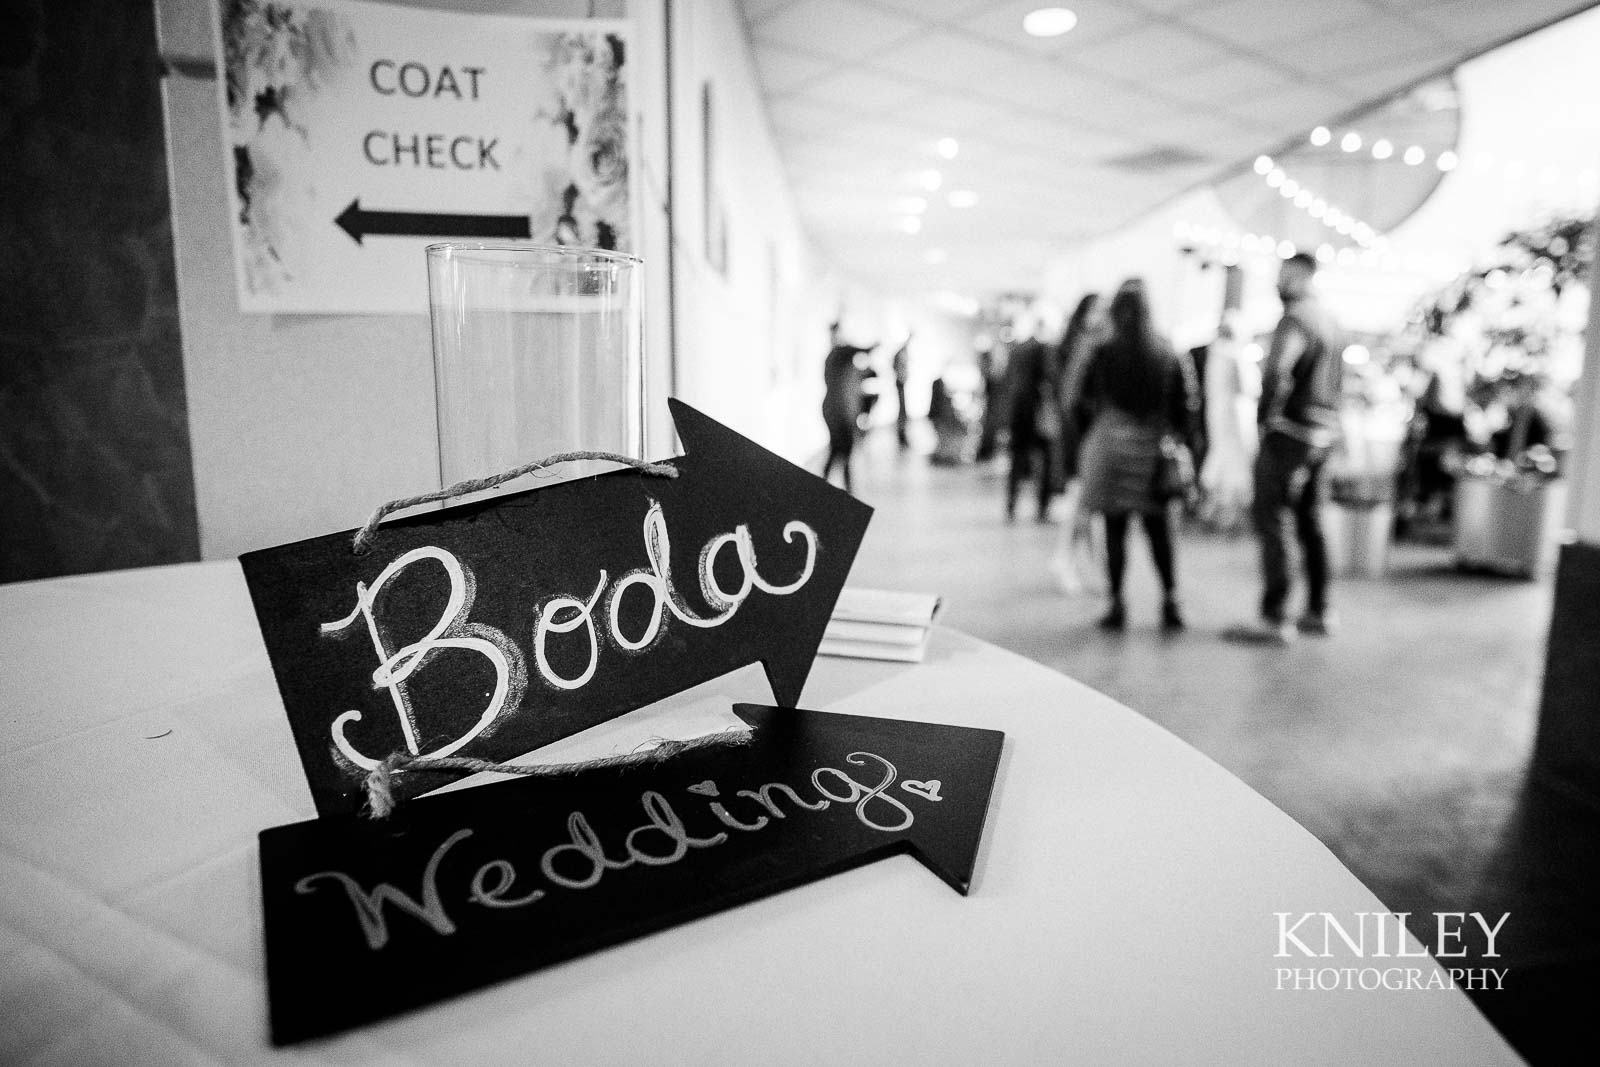 47-Max-of-Eastman-Wedding-and-Reception-Rochester-NY-Kniley-Photography.jpg